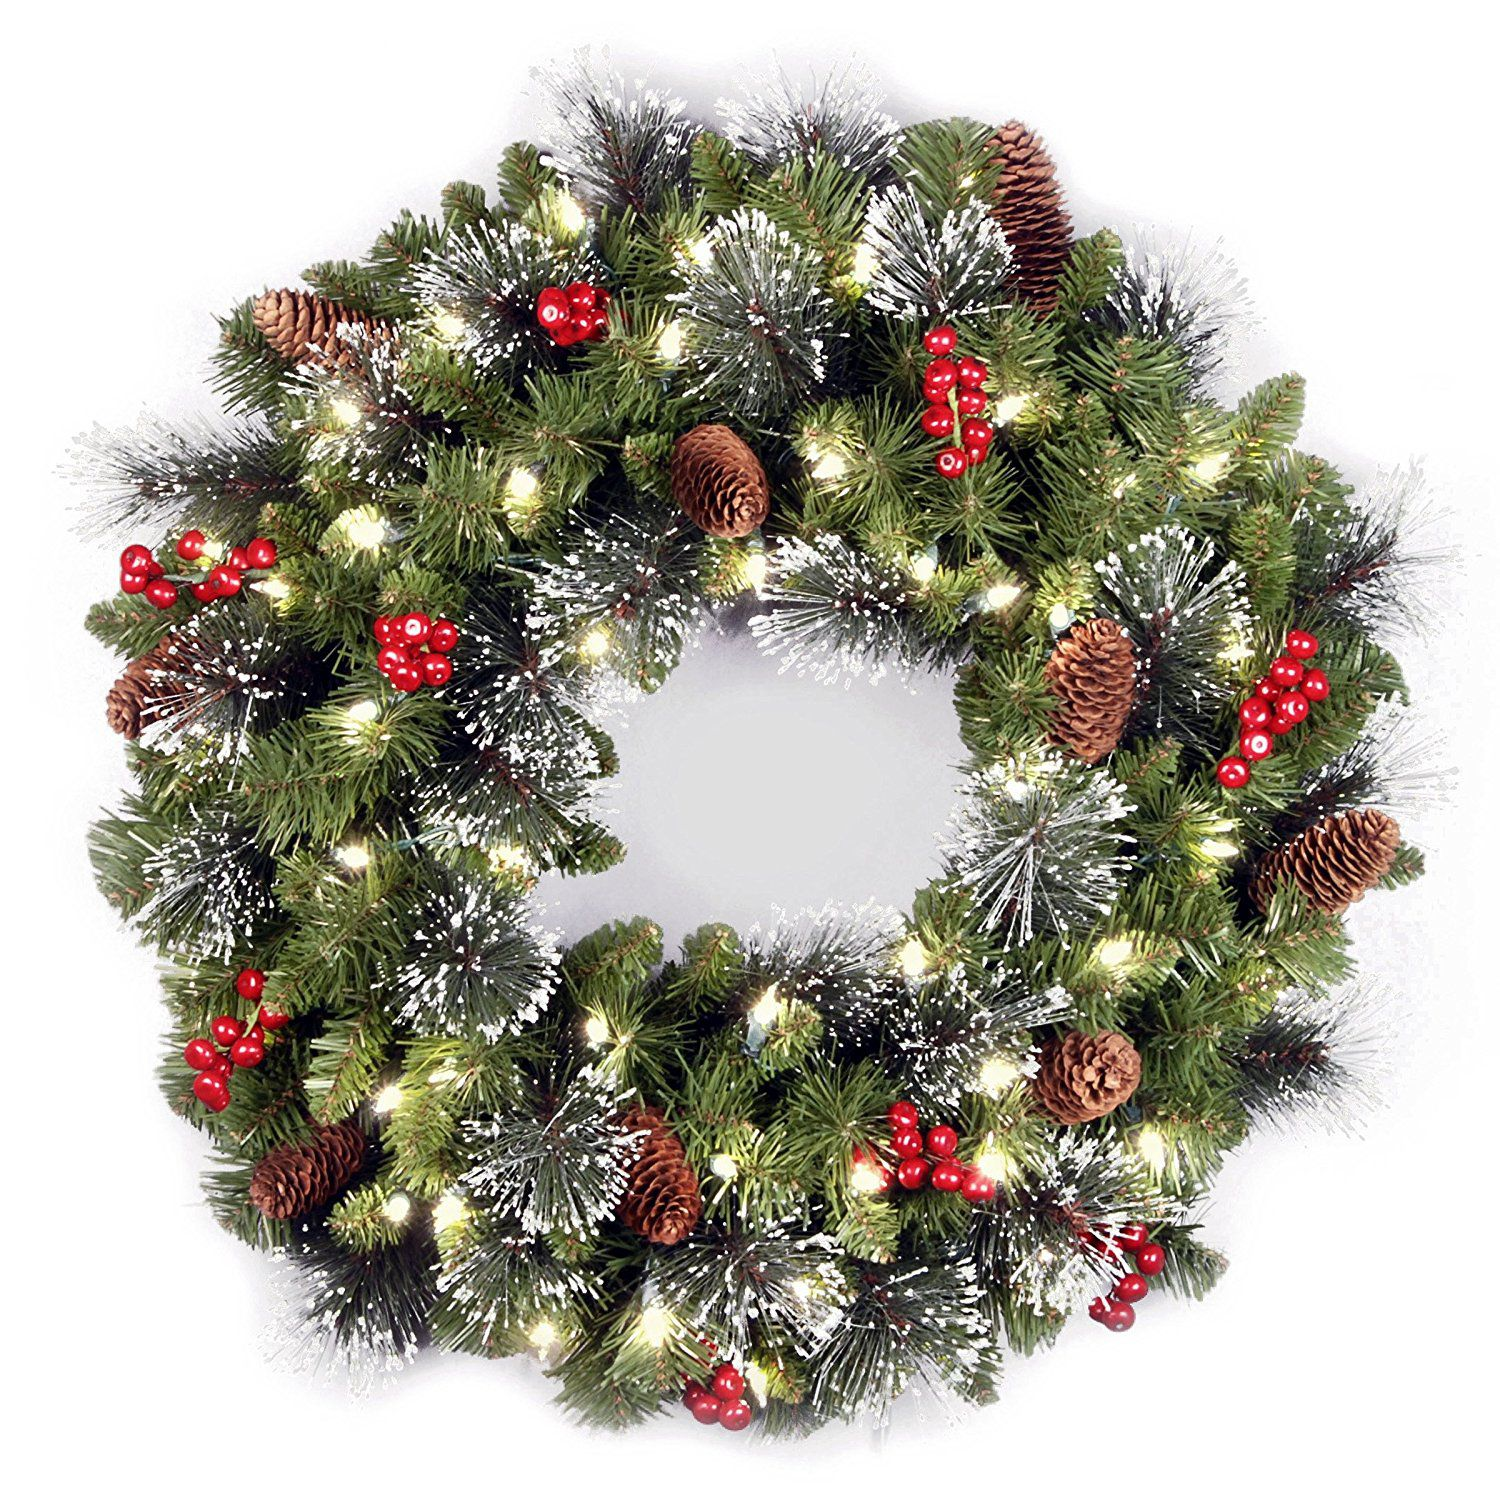 The 8 best christmas decor wreaths to buy in 2018 for Best place to buy wreaths